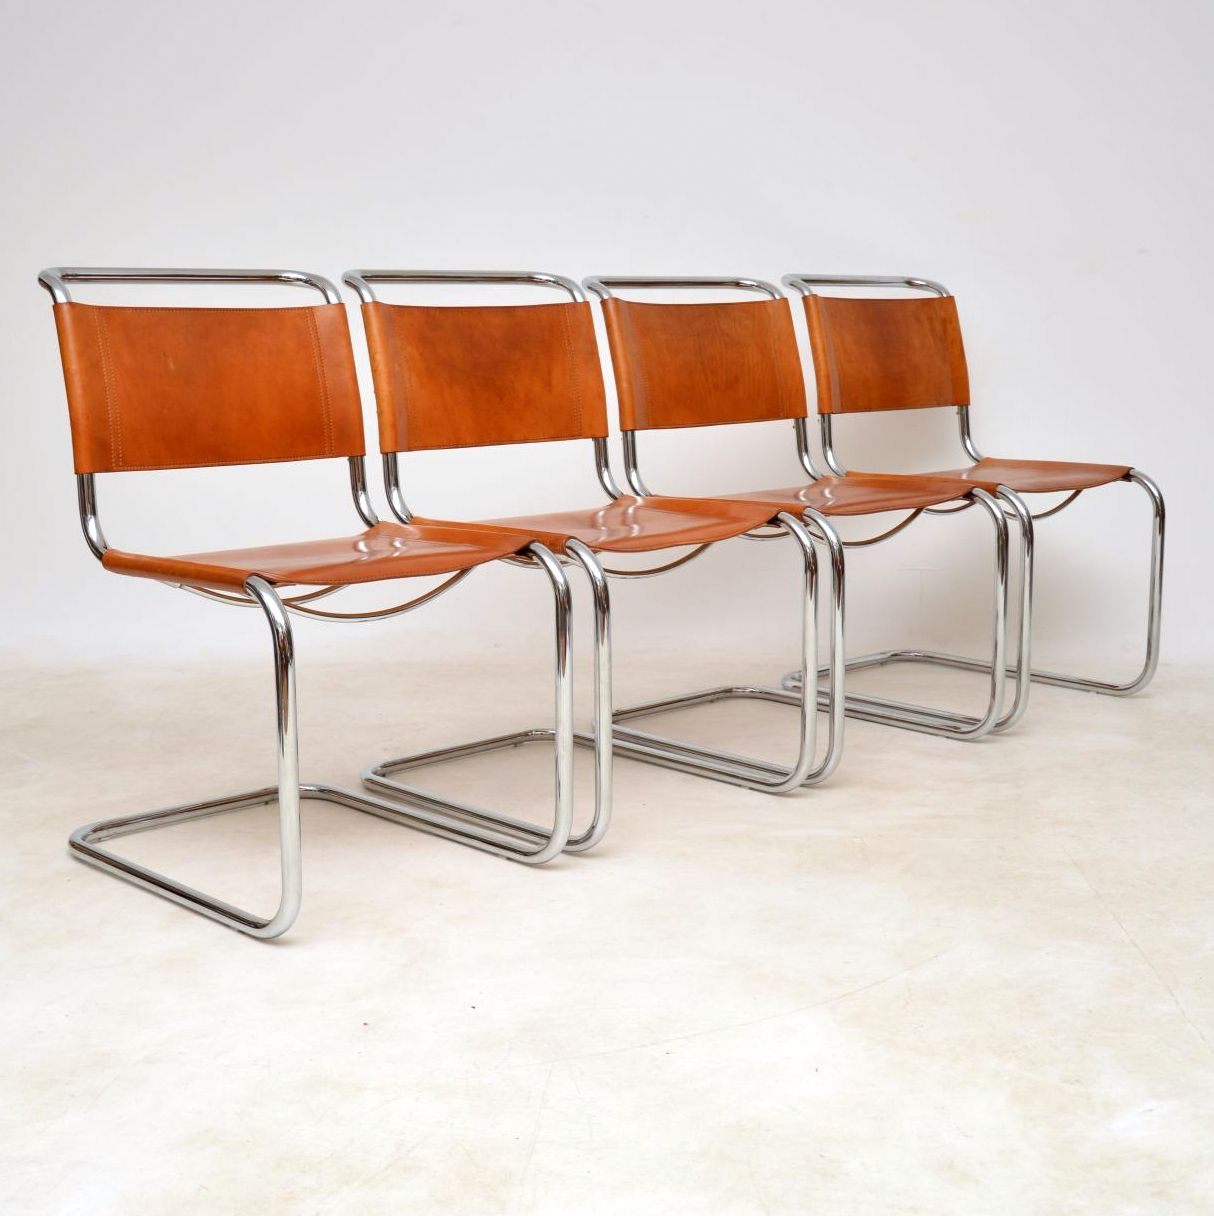 1970 S Vintage Italian Leather Dining Chairs By Mart Stam For Fasem